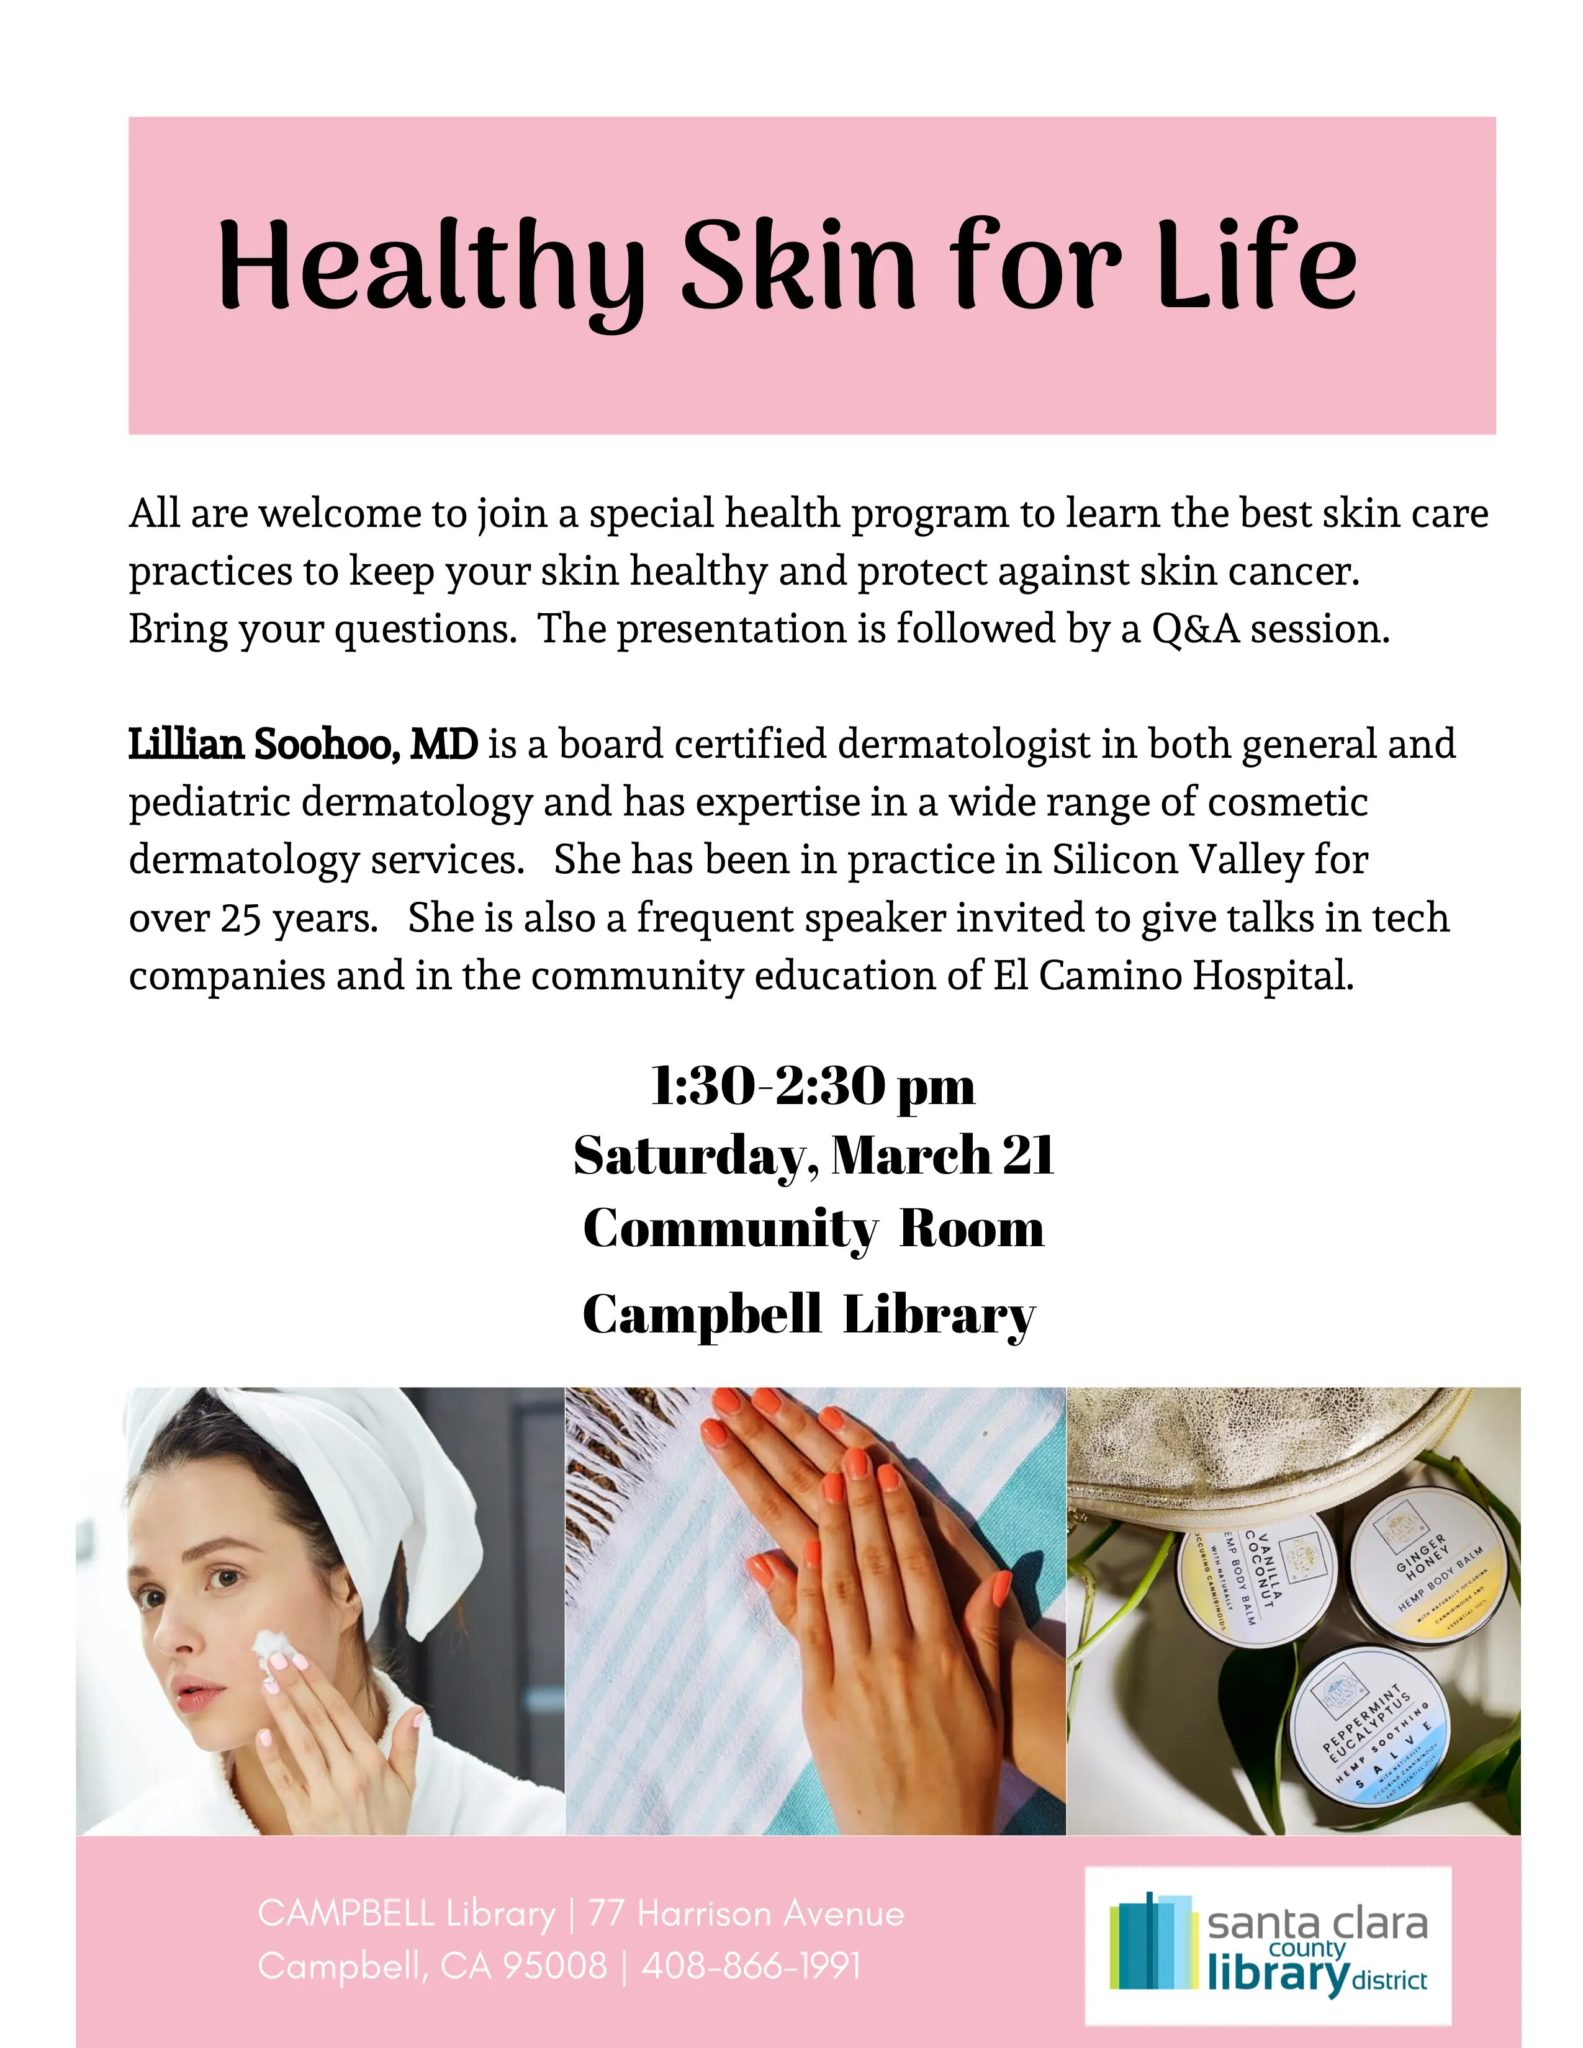 3 21 2020 campbell library healthy skin for life scaled.jpg